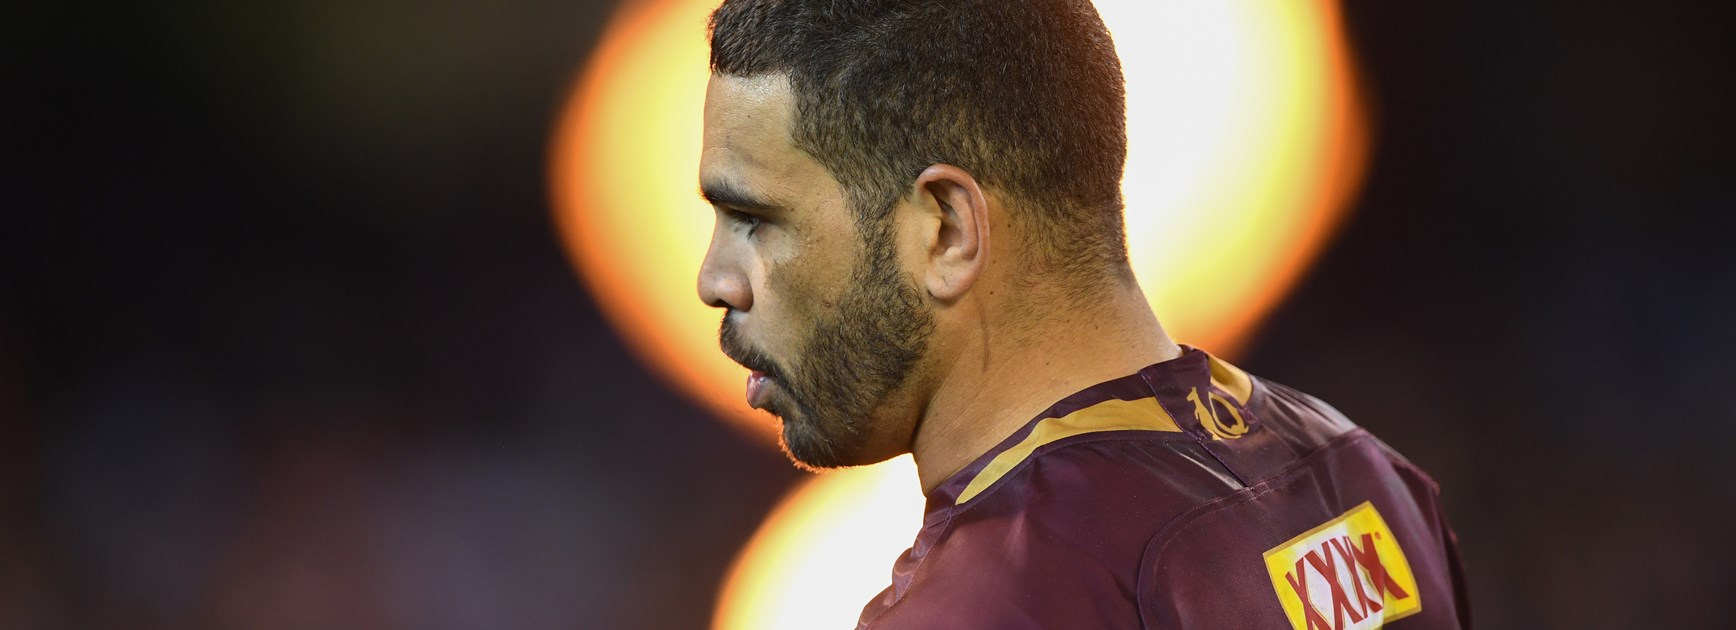 Greg Inglis will say goodbye to Origin football in 2019.